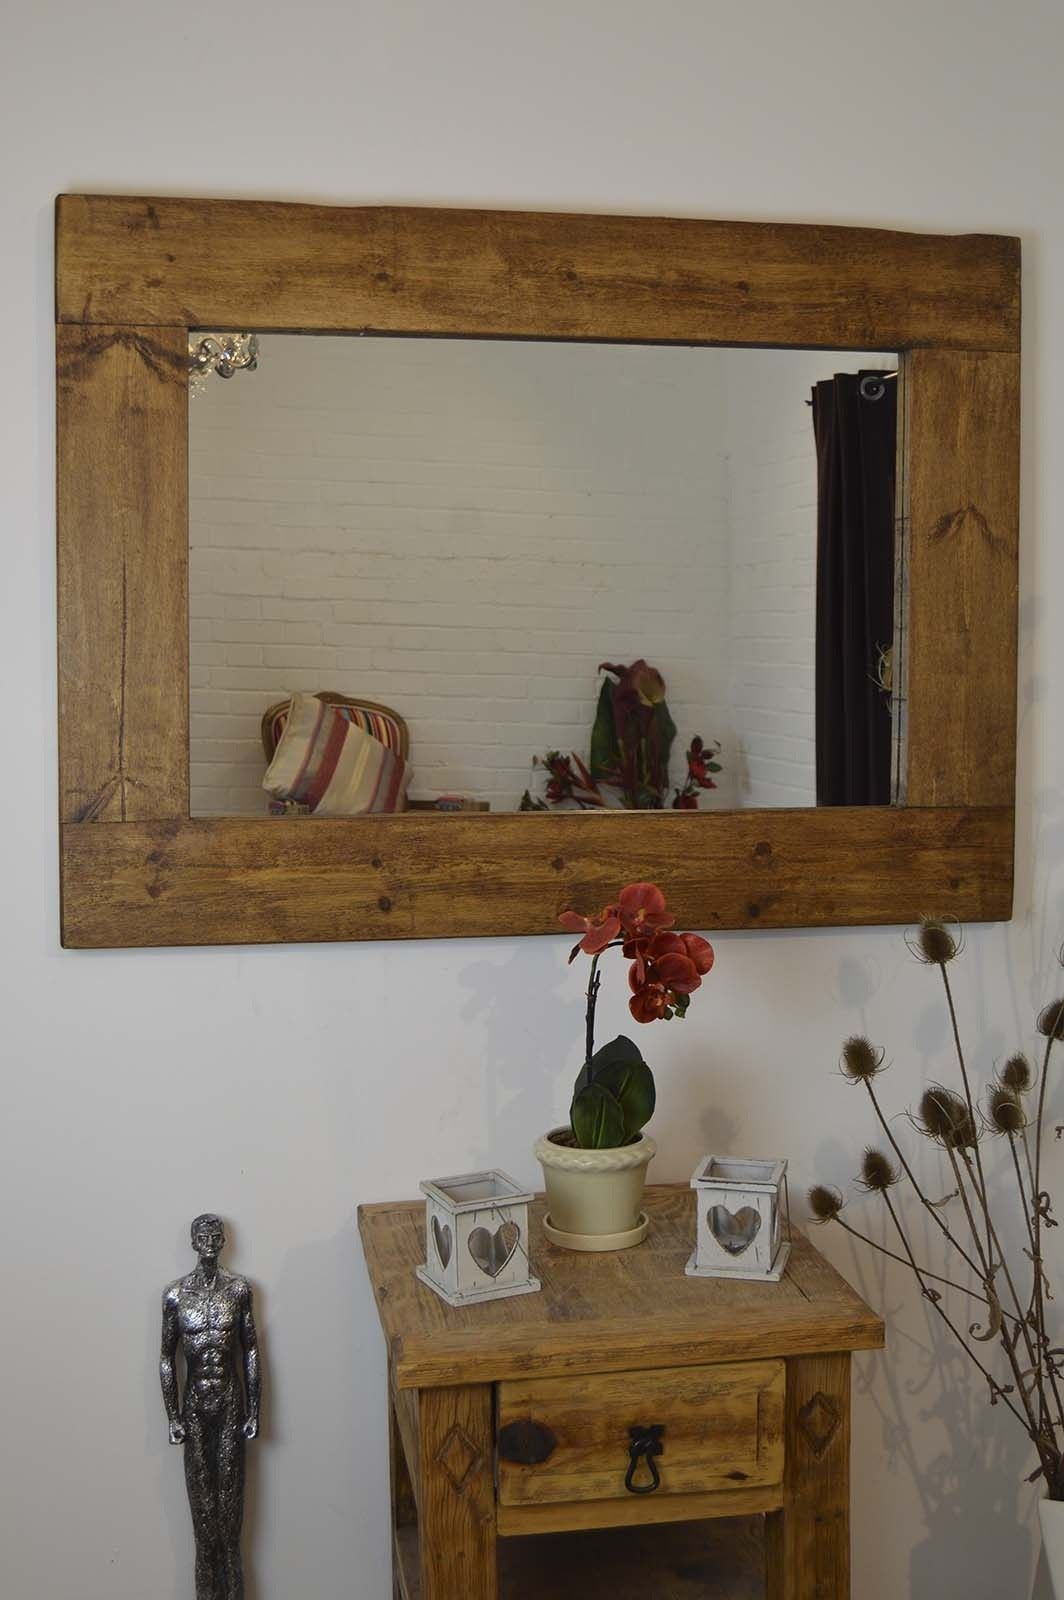 Large rustic natural solid wood brown wall mirror 4ft x 3ft 122cm large rustic natural solid wood brown wall mirror 4ft x 3ft 122cm x 91cm amipublicfo Images